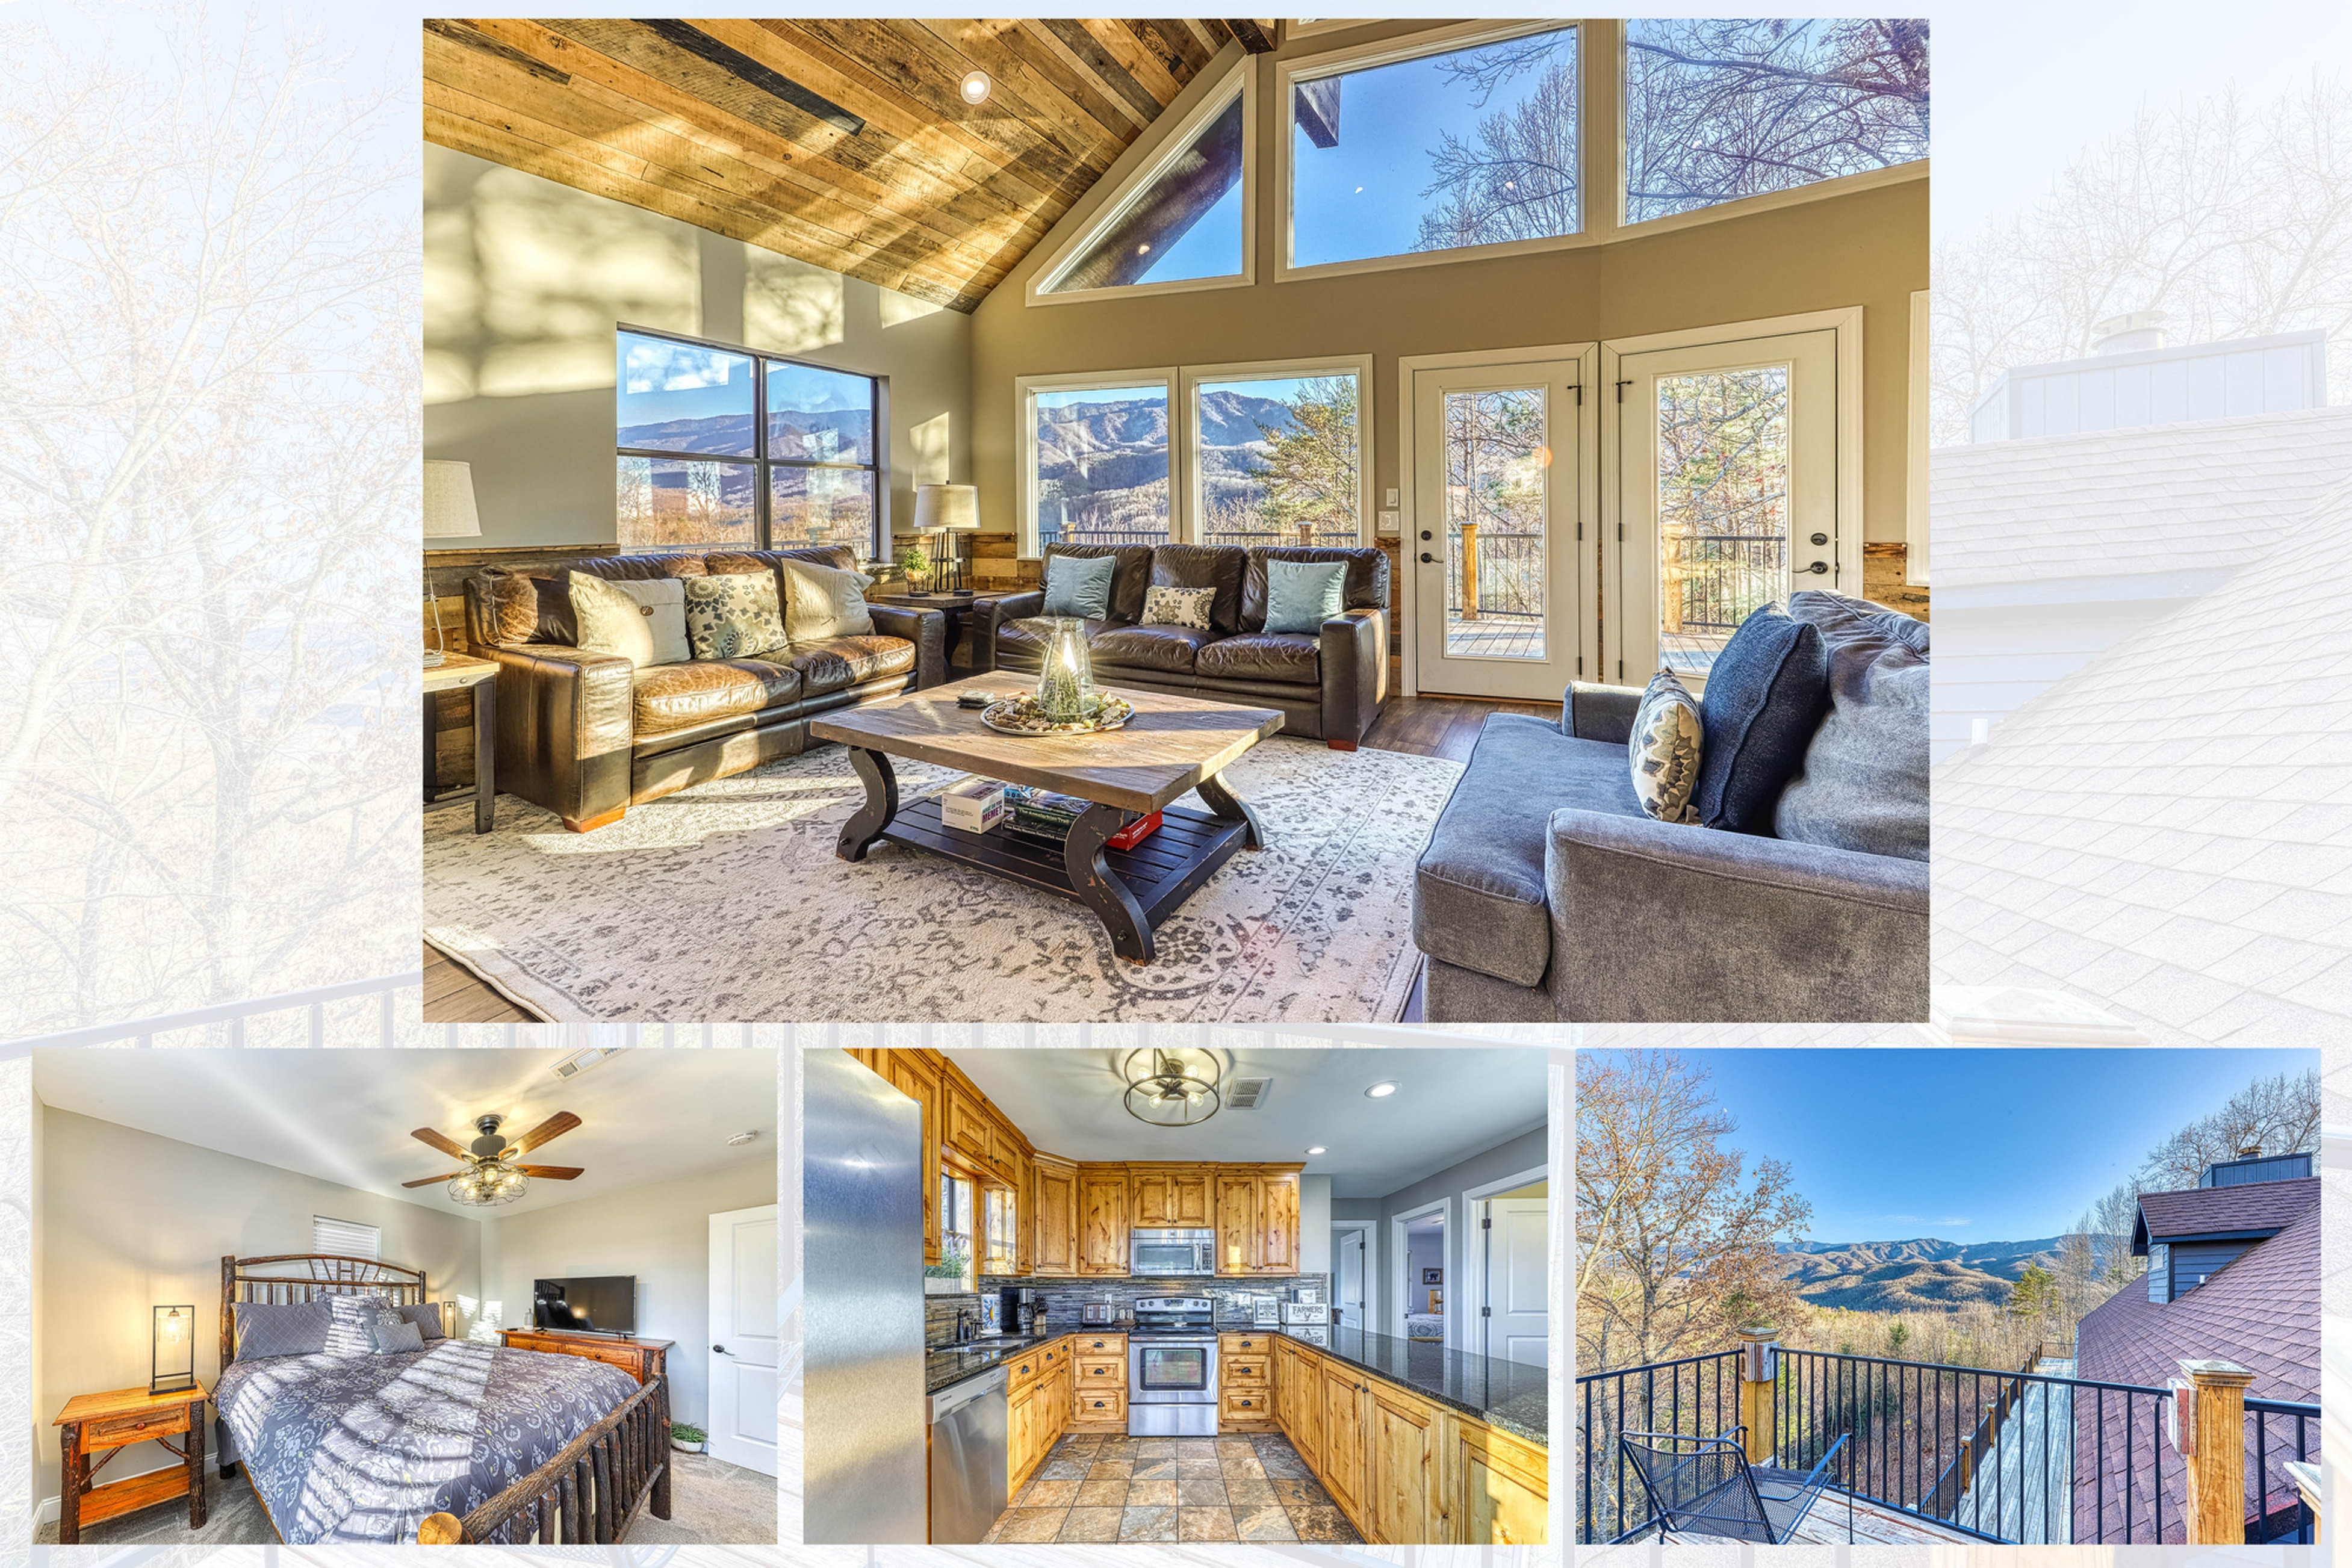 Real Estate/Rental Photography & Video